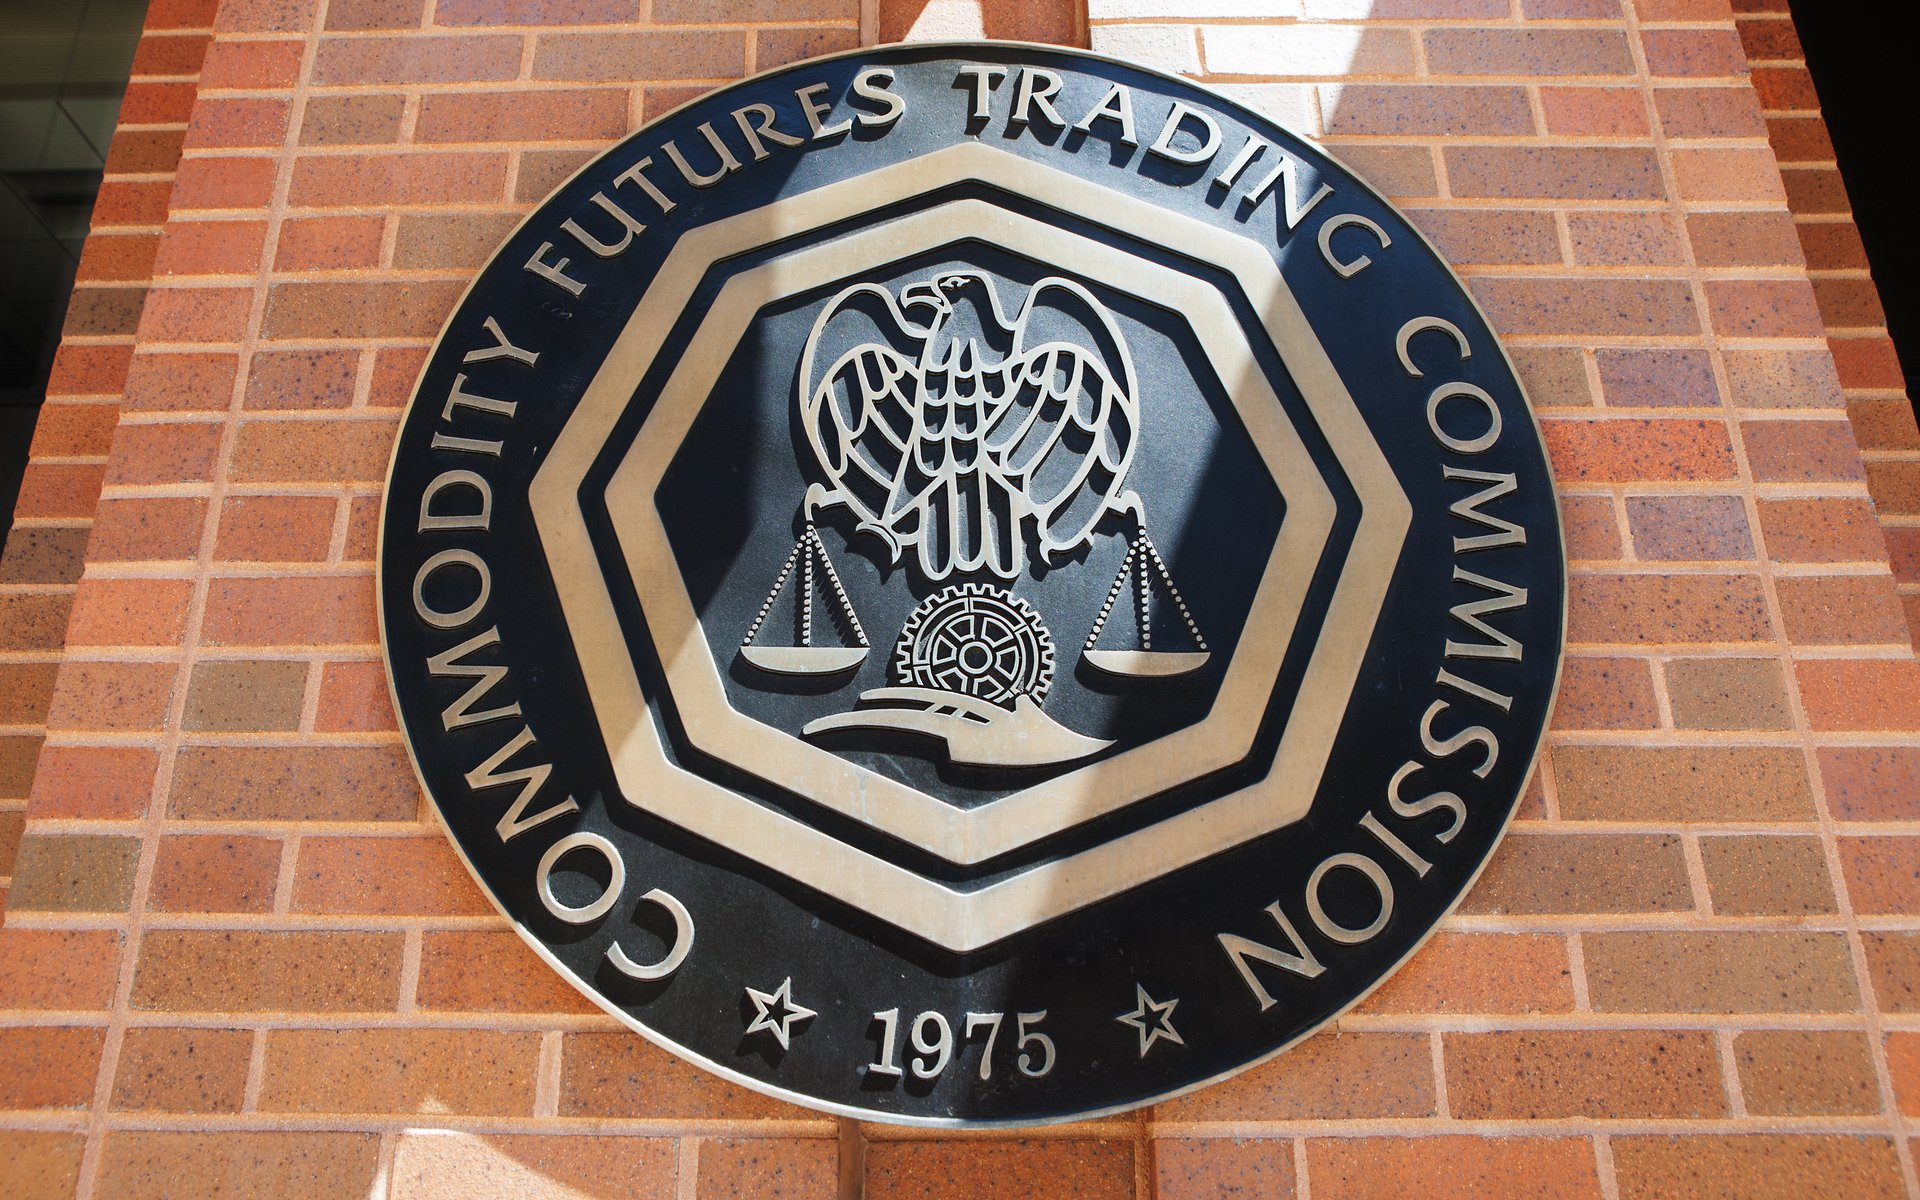 Cftc chairman bitcoin suited for long term buy and hold strategy cftc chairman bitcoin suited for long term buy and hold strategy bitcoinist ccuart Choice Image